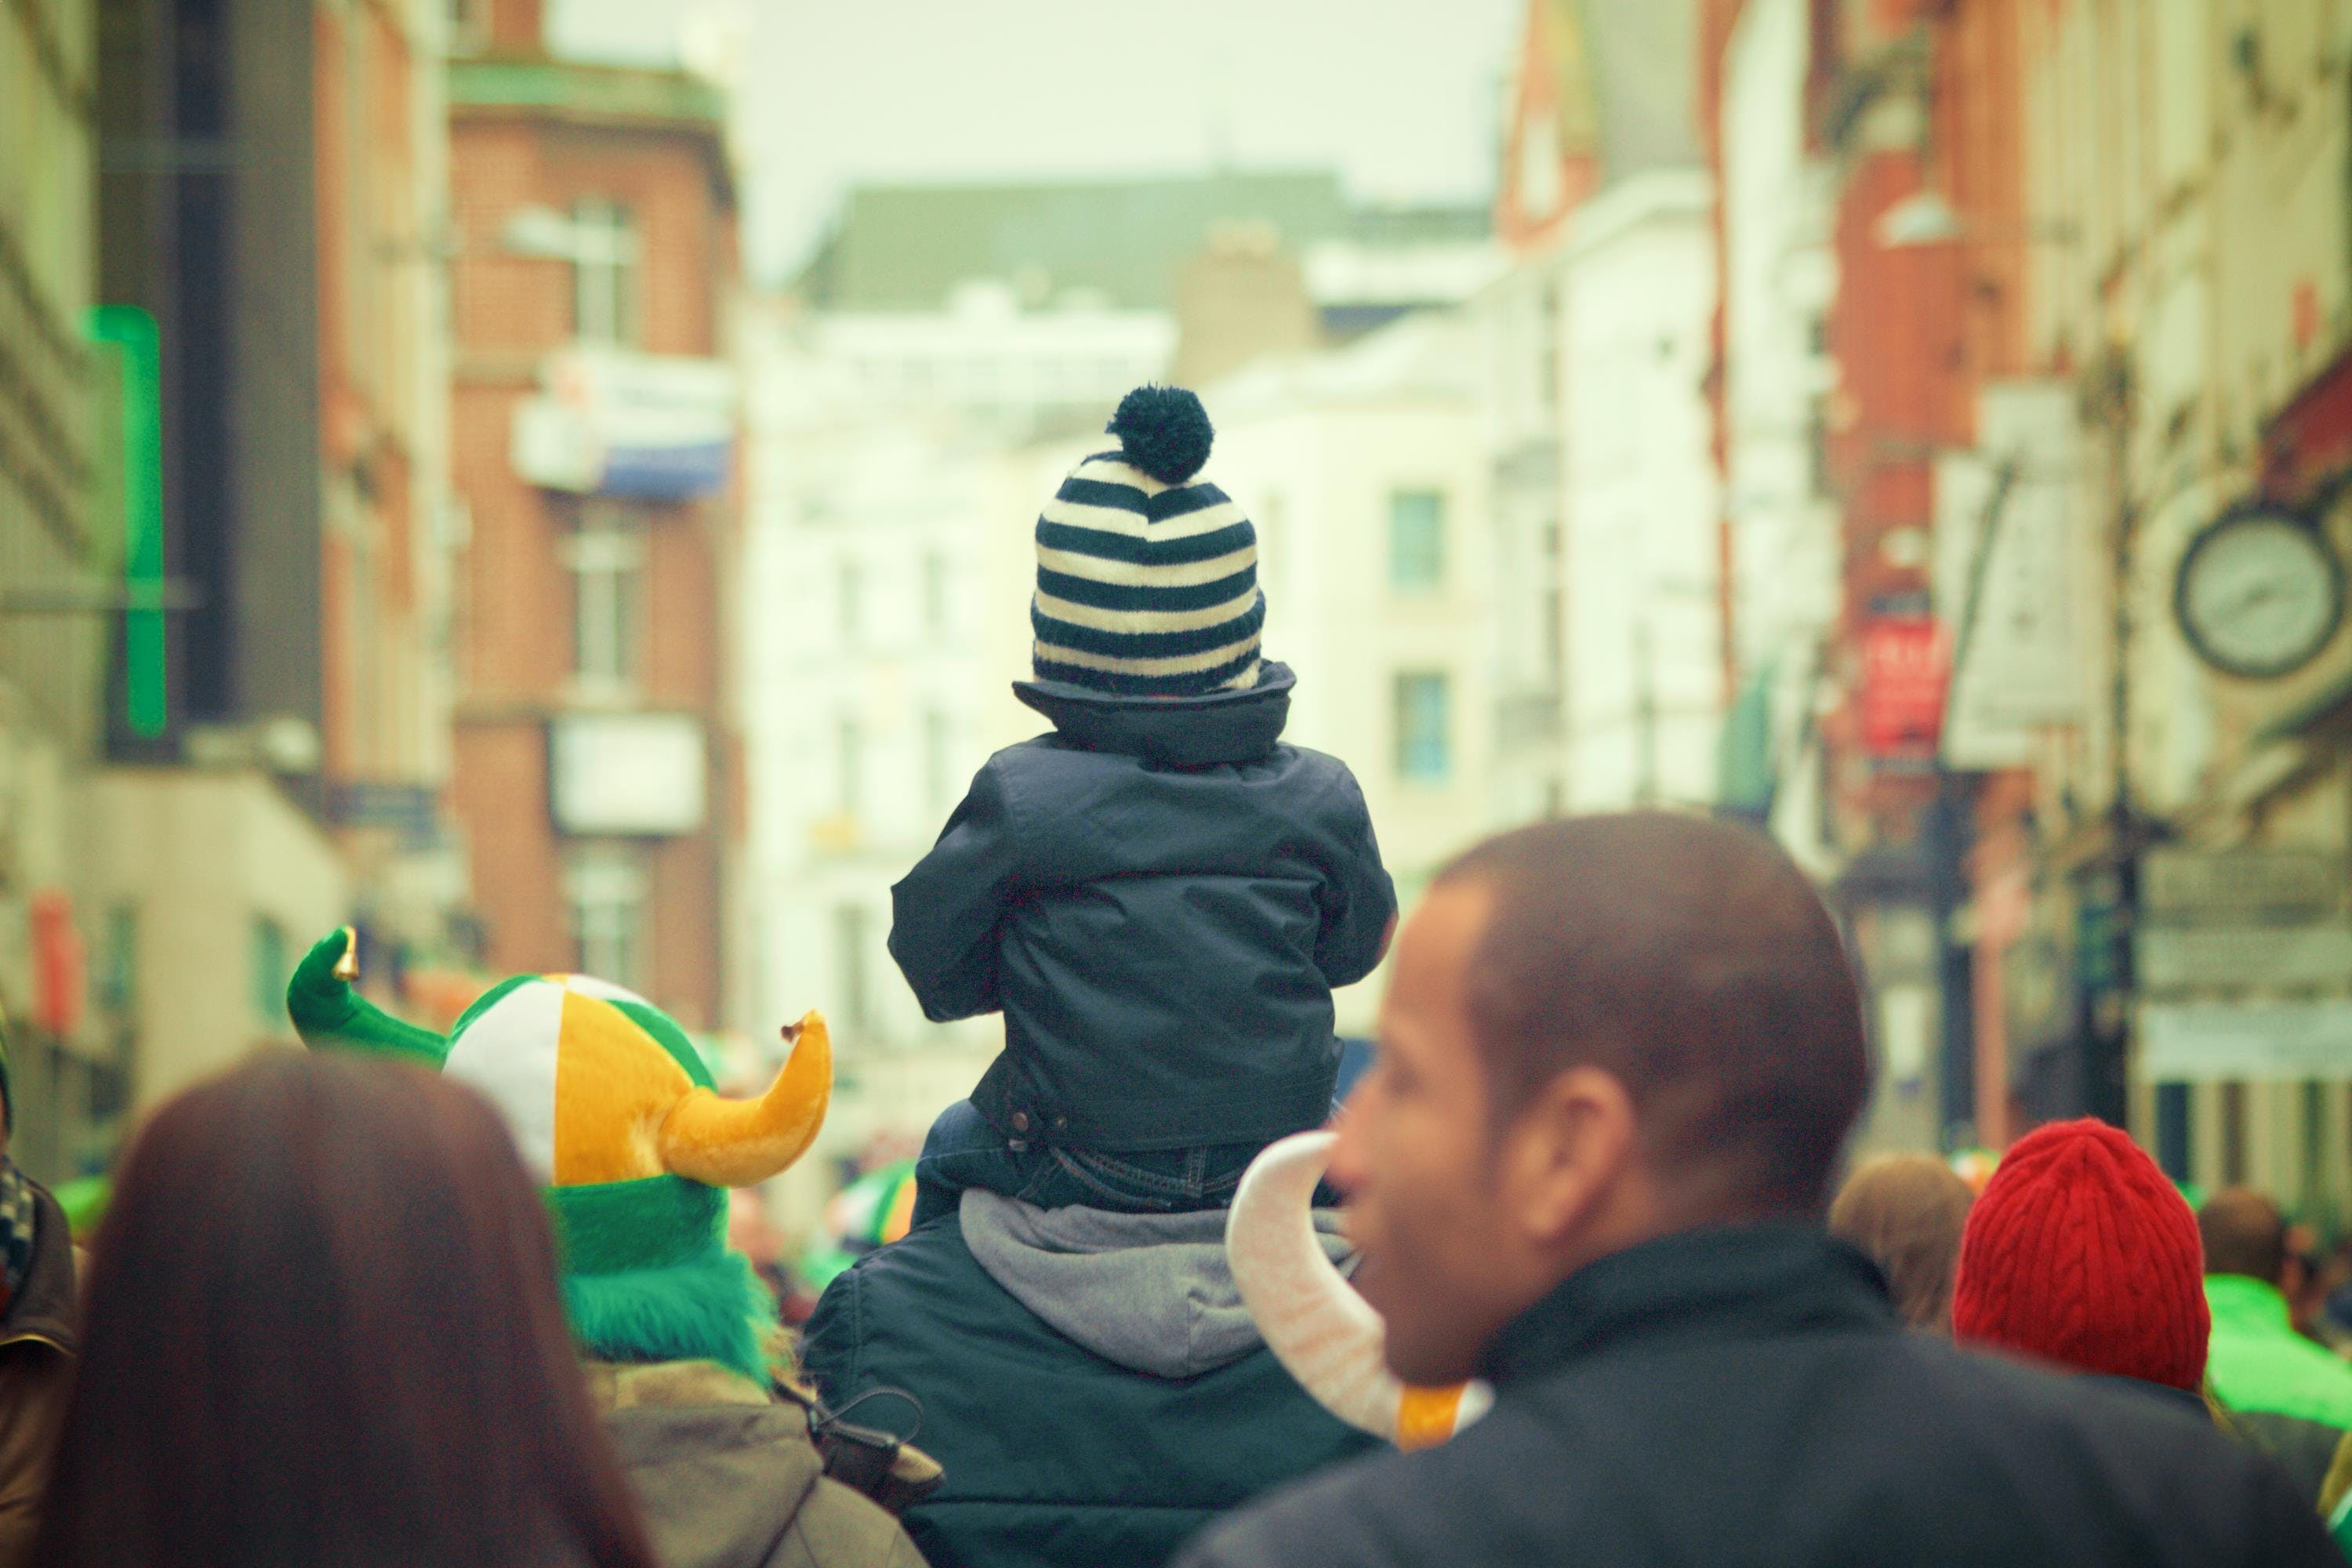 Free stock photo of people, crowd, child, kid